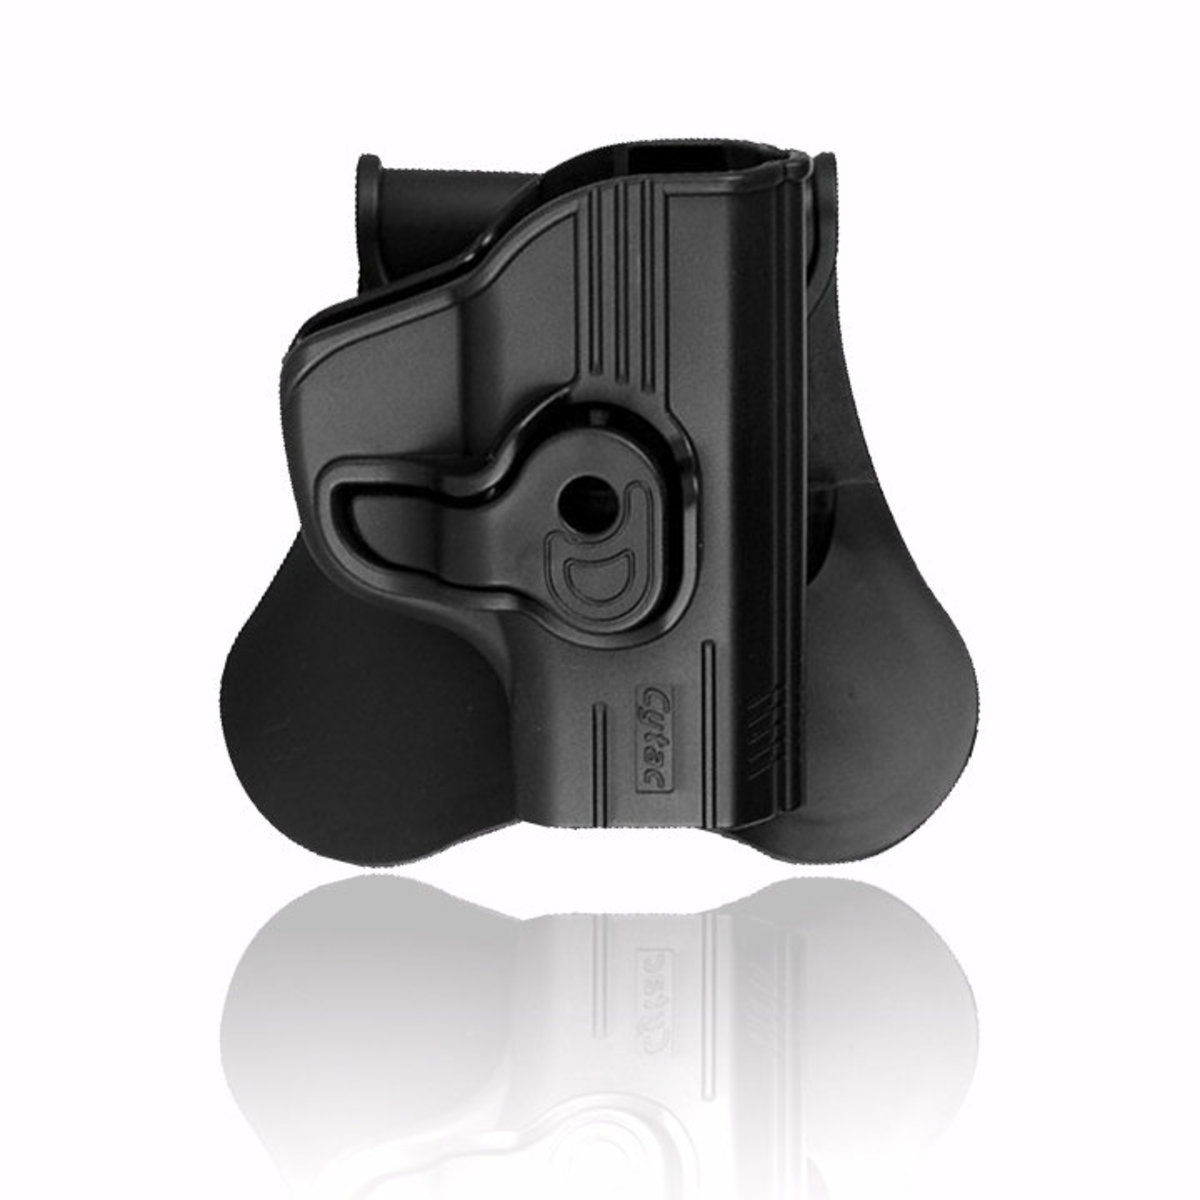 View larger image of Cytac OWB Holster - Fits Ruger LC-380, LC-9